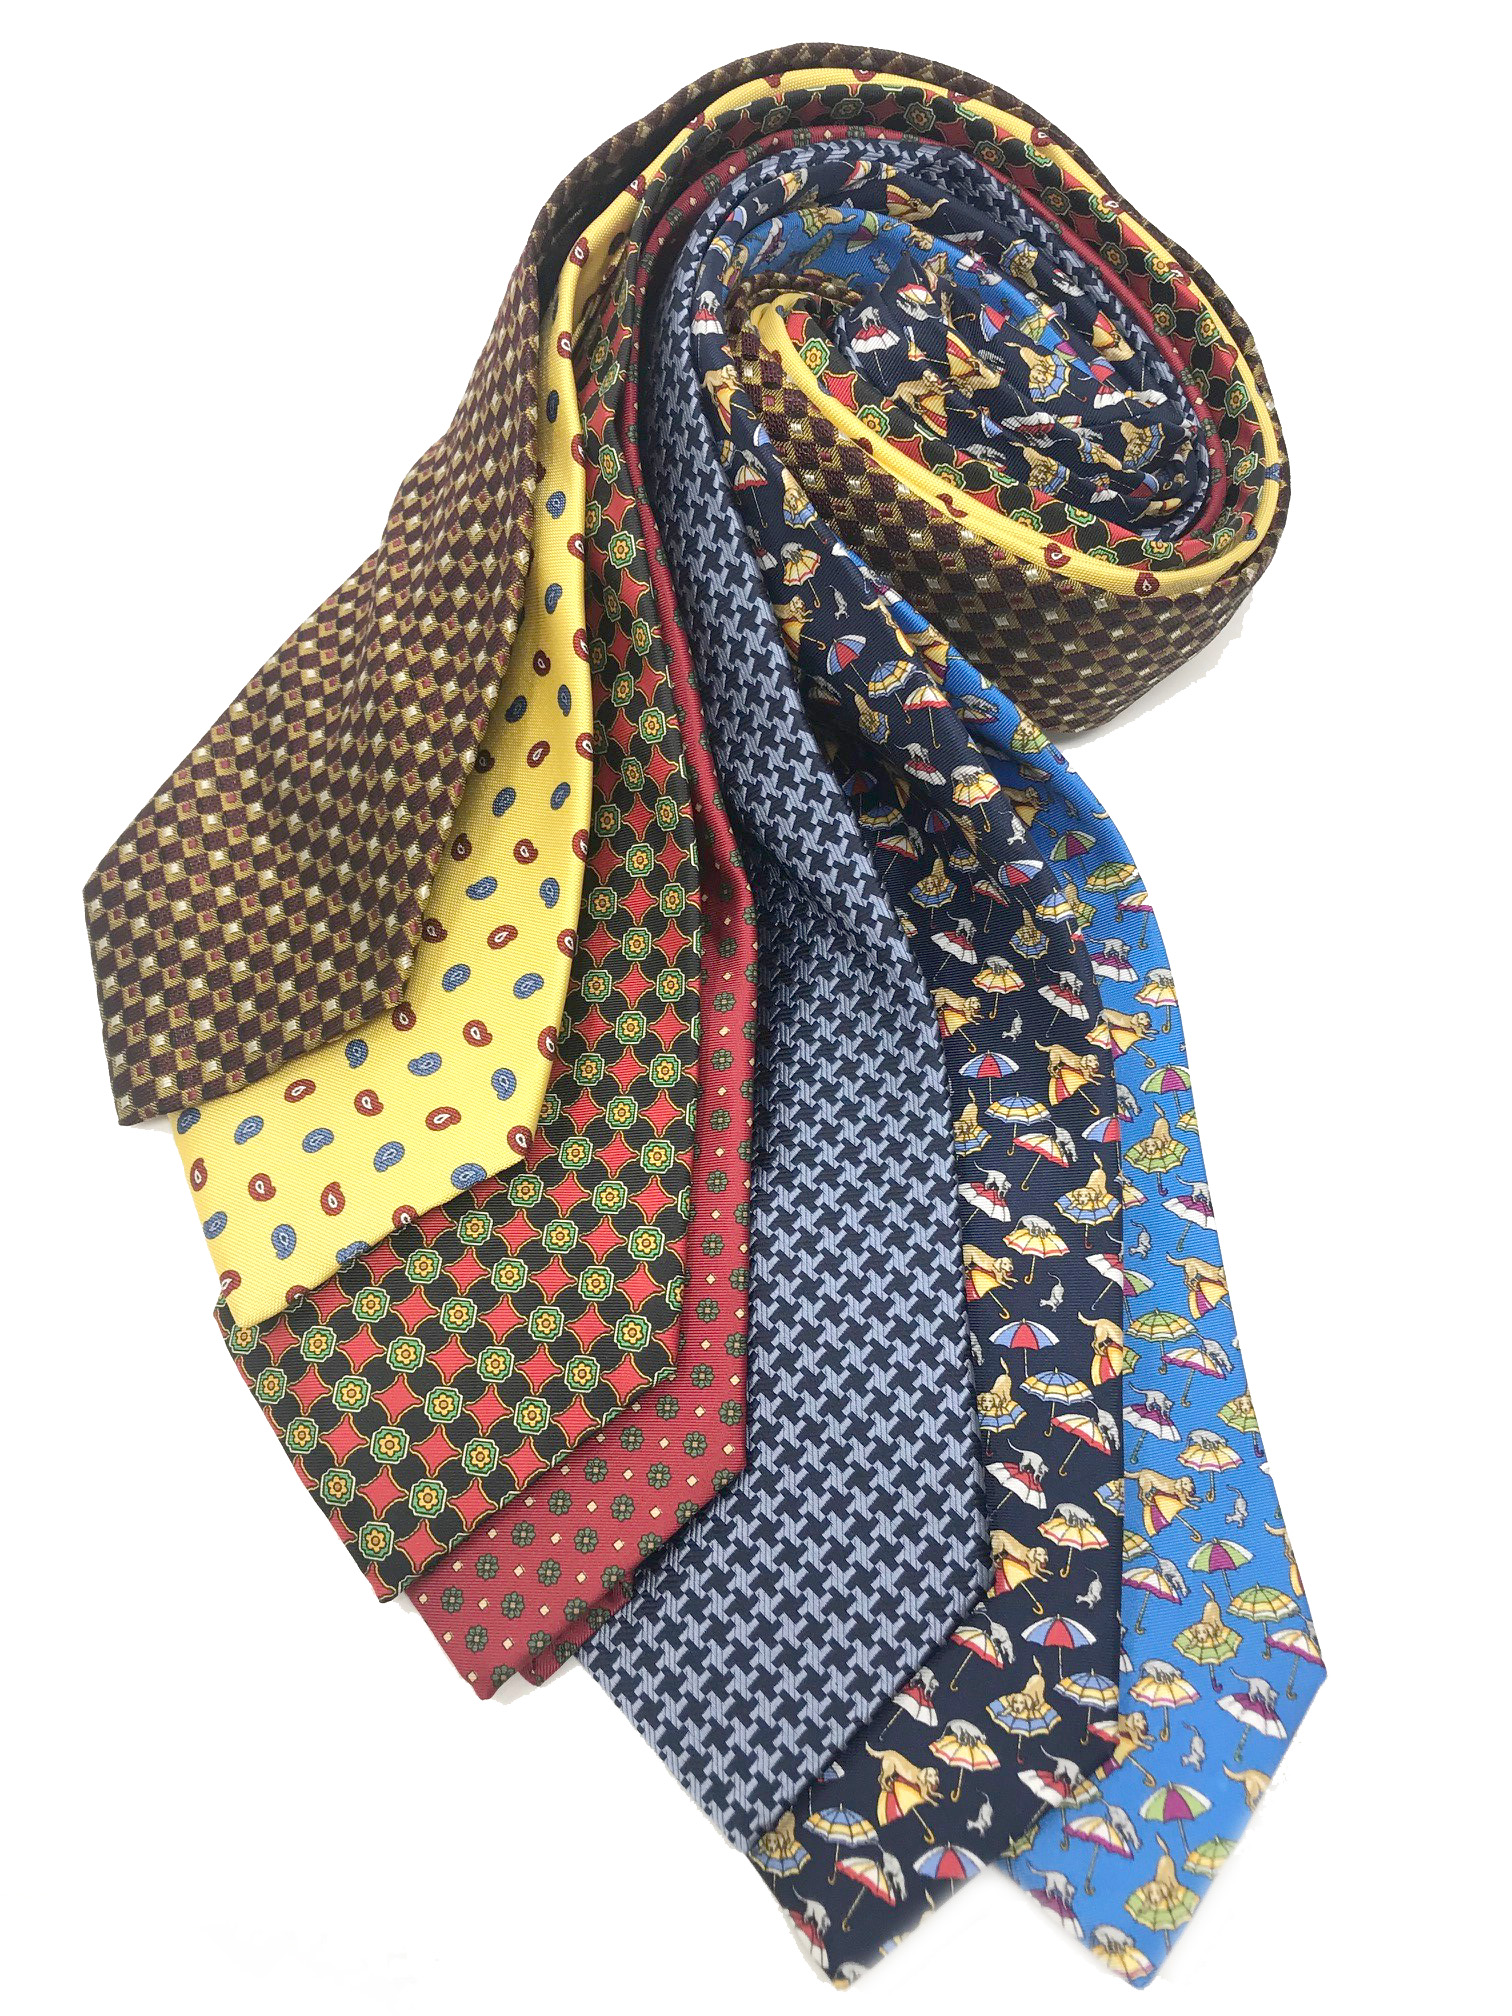 Cavenagh of London 7Piece 100% Pure Silk Ties Made in UK (723D)RRP£139.99